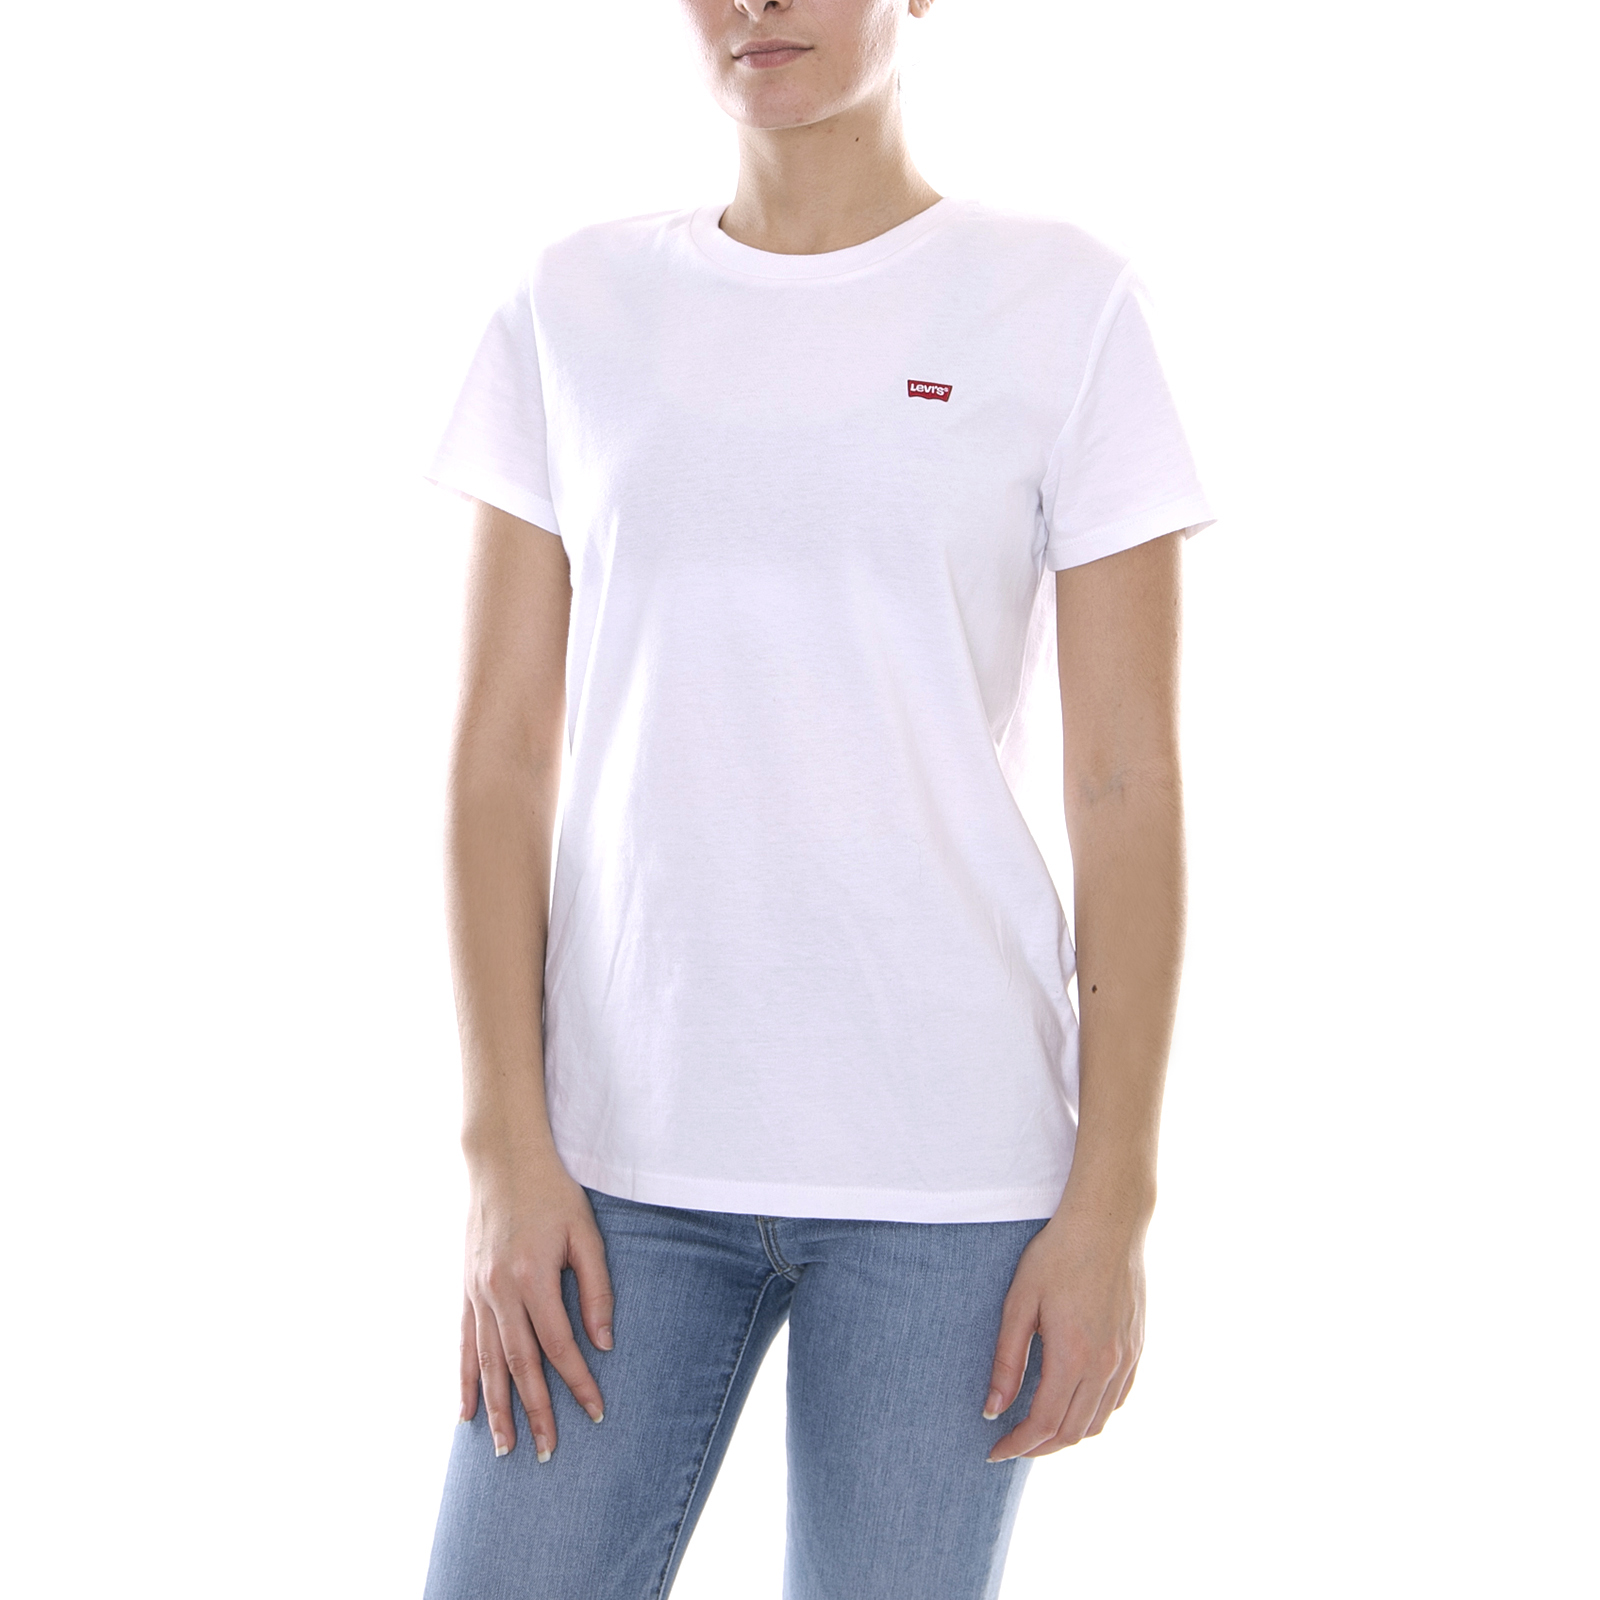 a672208f Levis t-shirt perfect tee white white | eBay